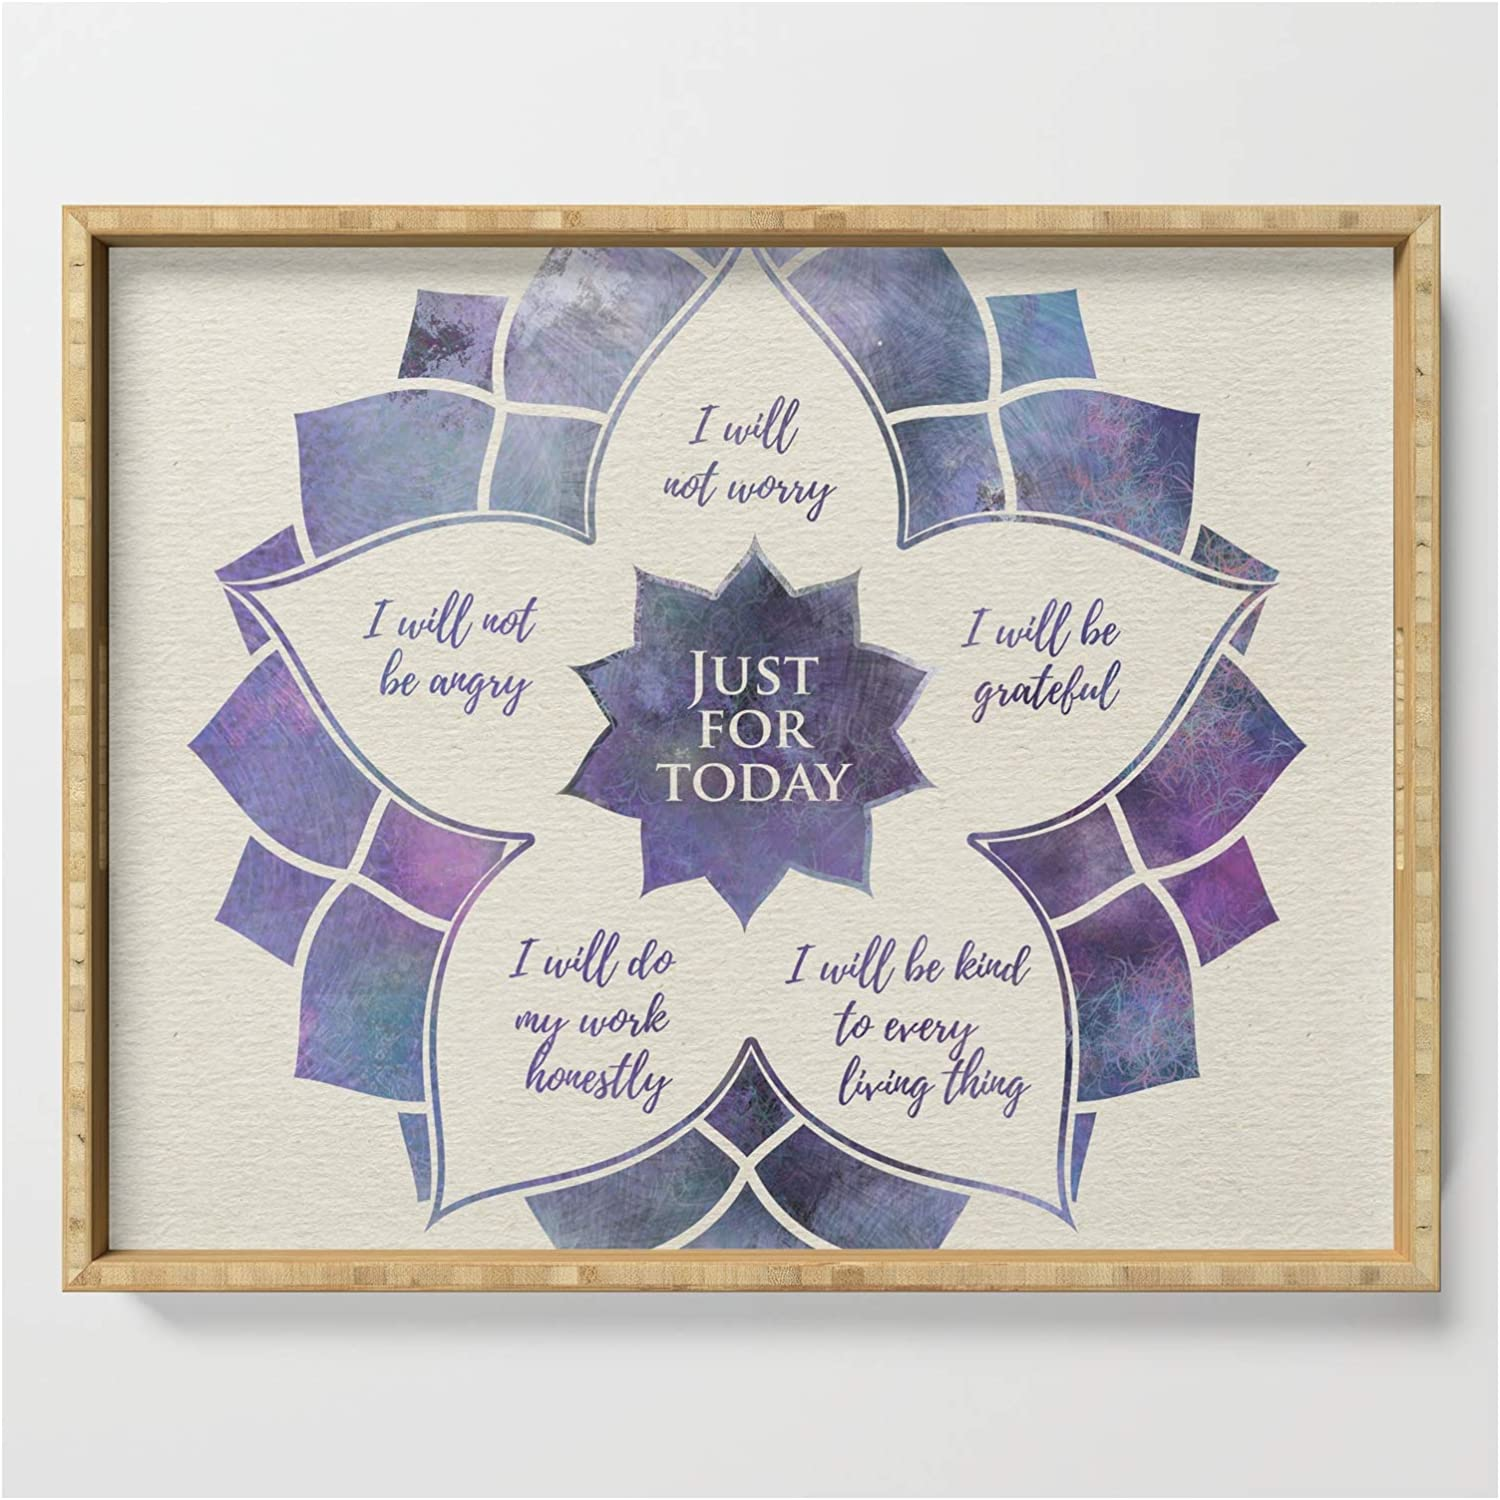 Reiki Principles Time sale - Precepts Brand new #10 T by Serving on Nartissima